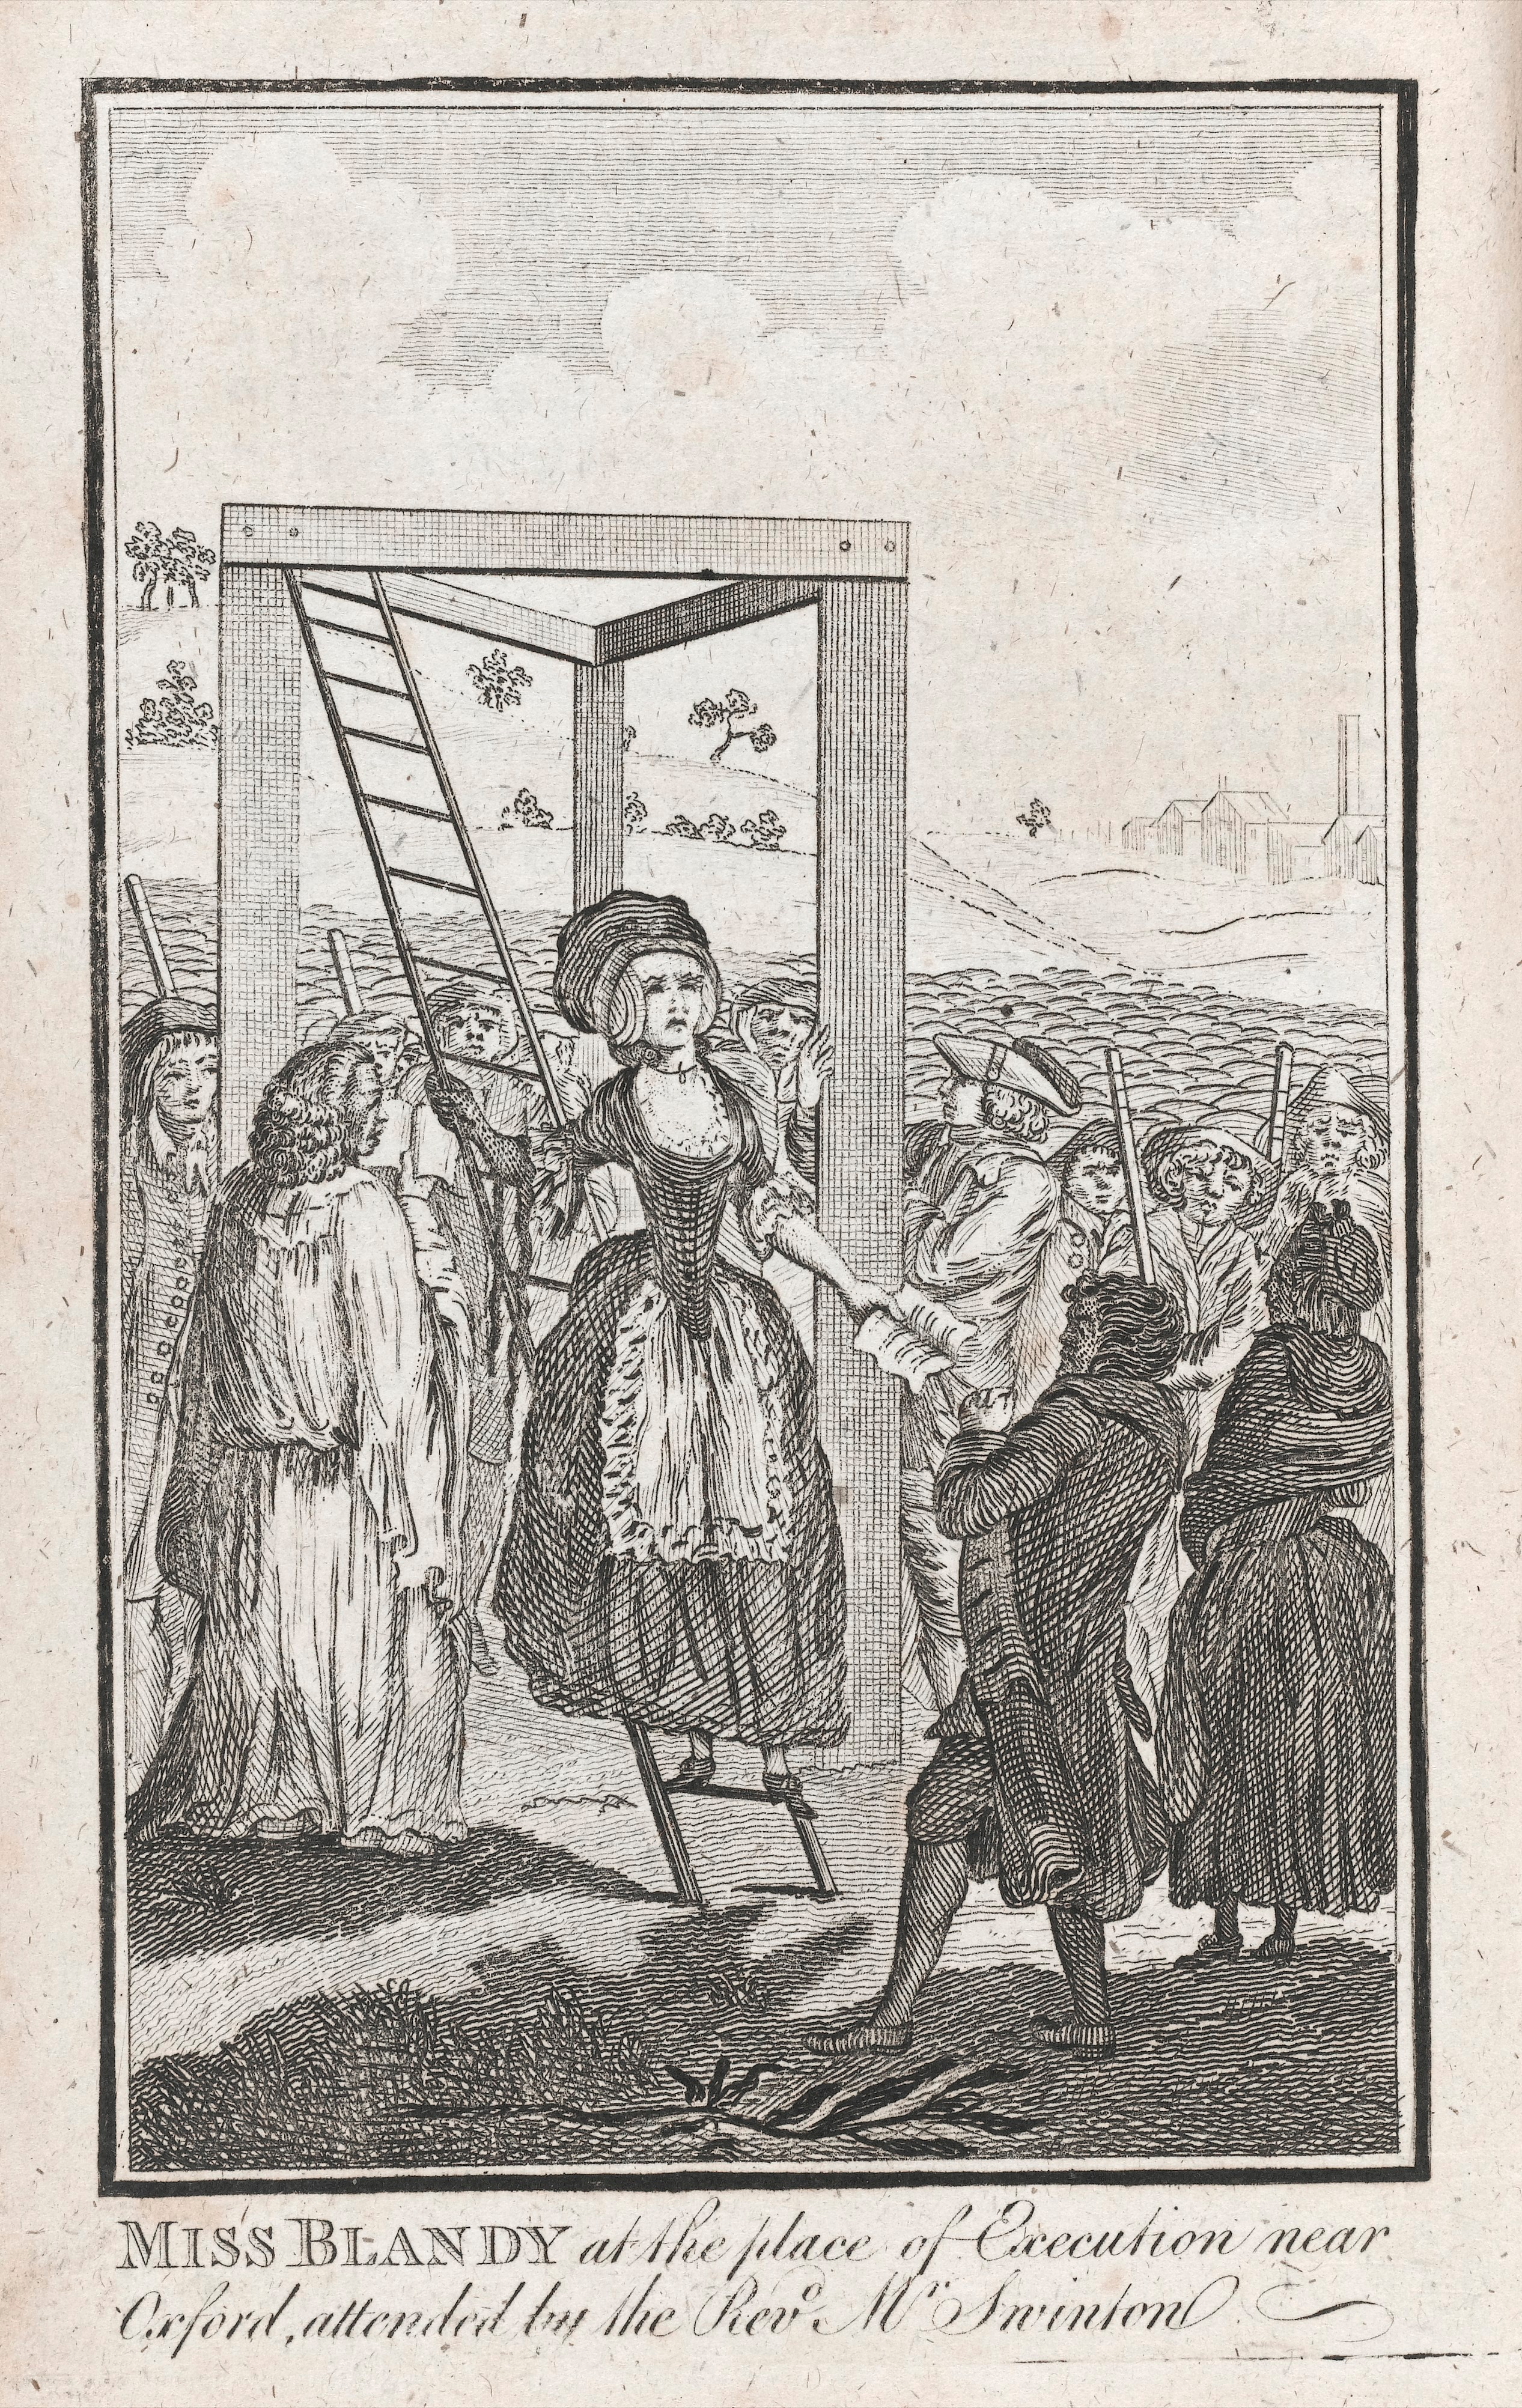 Engraving of a woman climbing a ladder to the scaffold titled